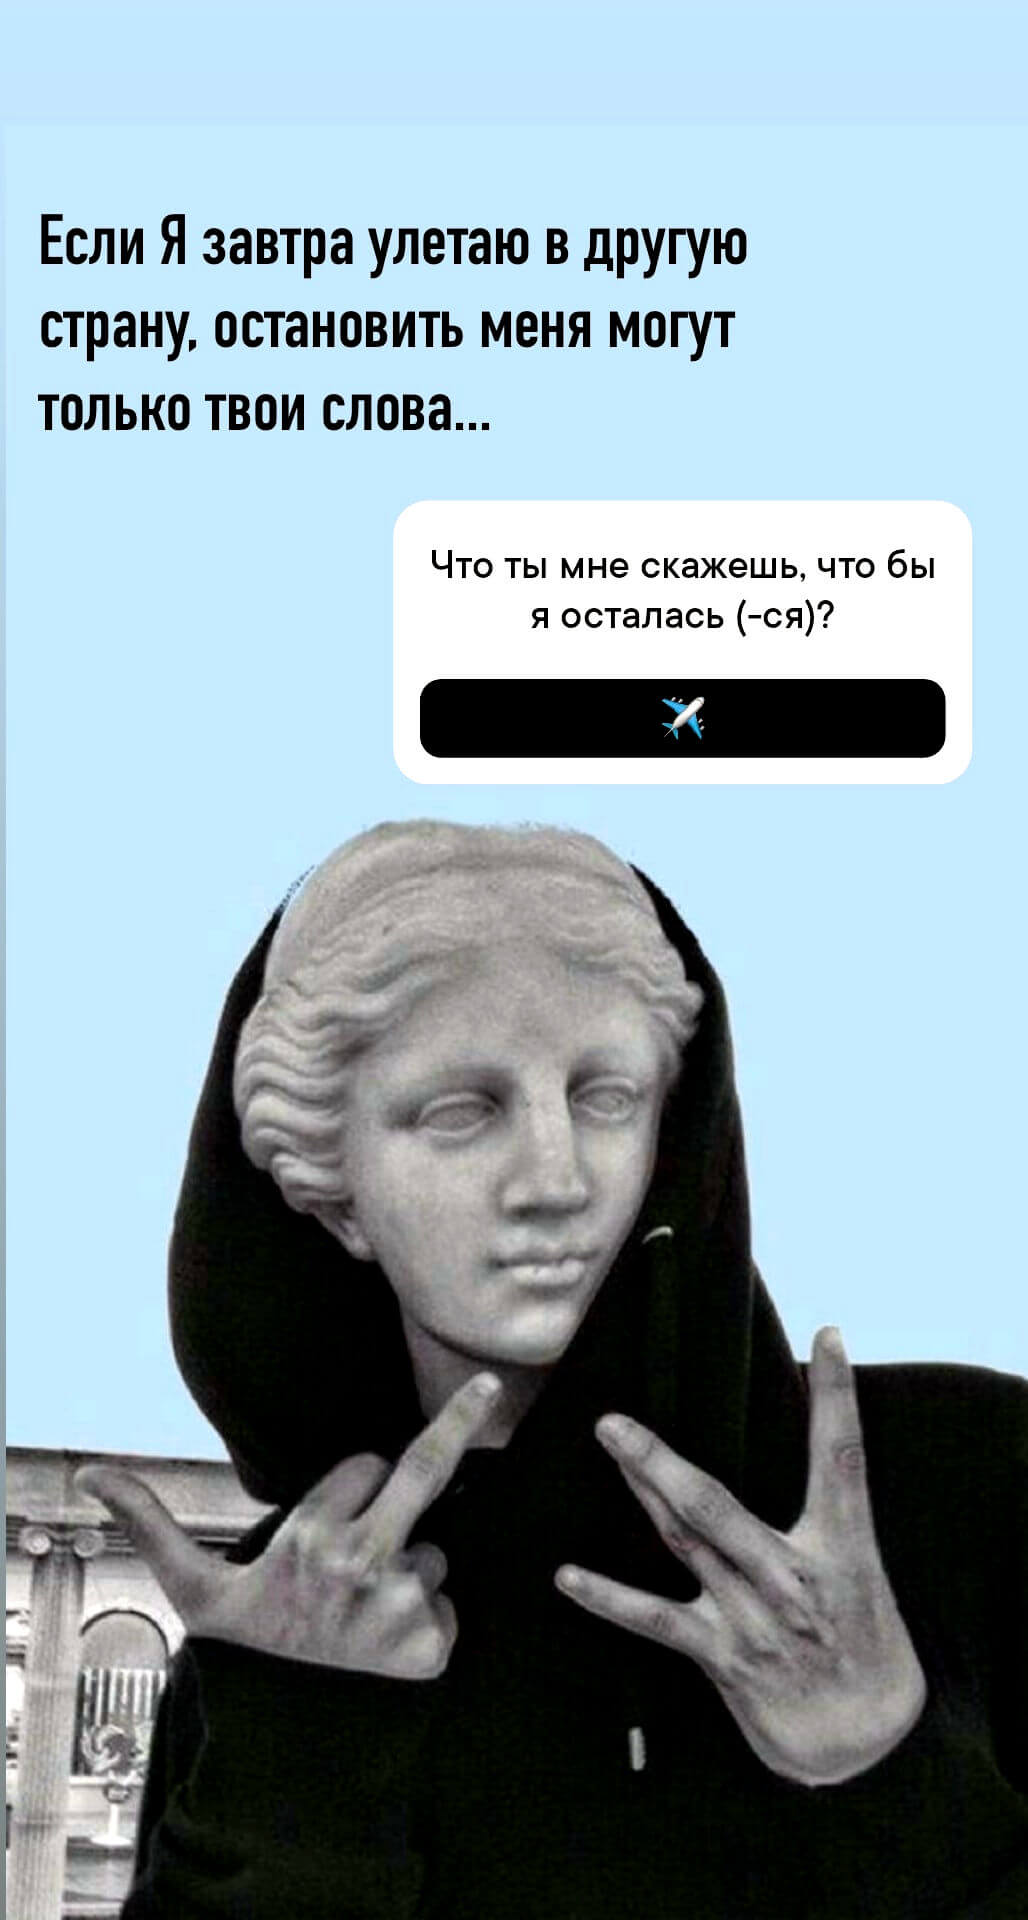 How to ask a question in VKontakte history